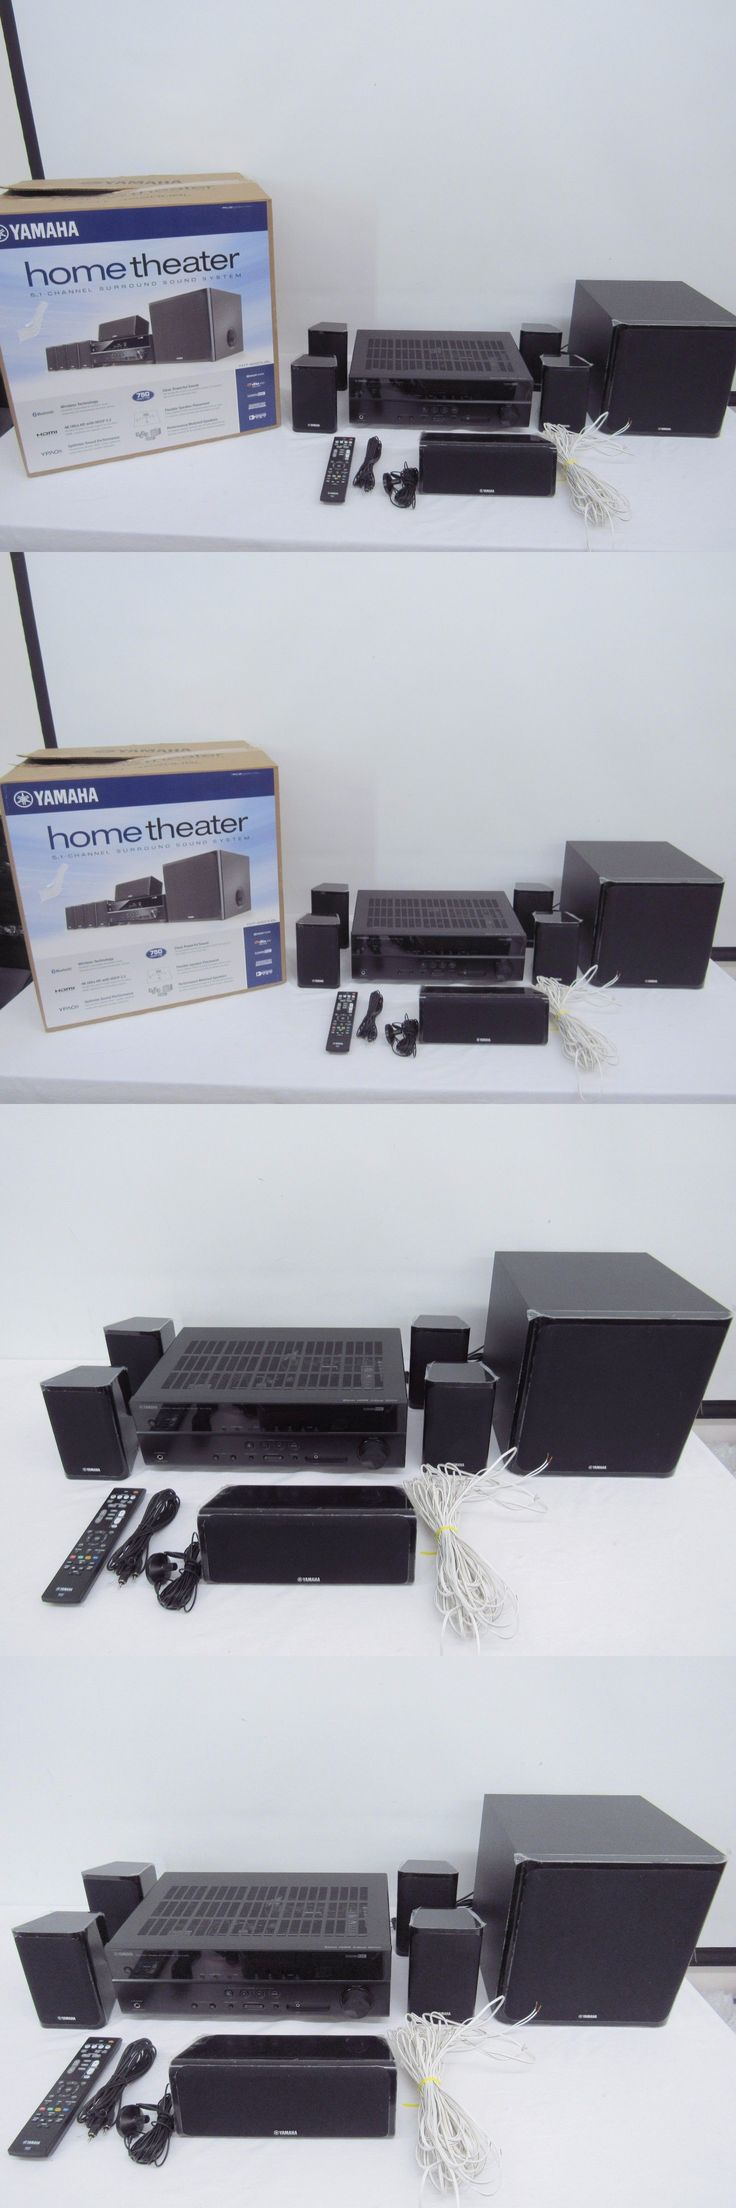 Home theater systems yamaha yht 4920ubl 5 1 channel home theater in a box